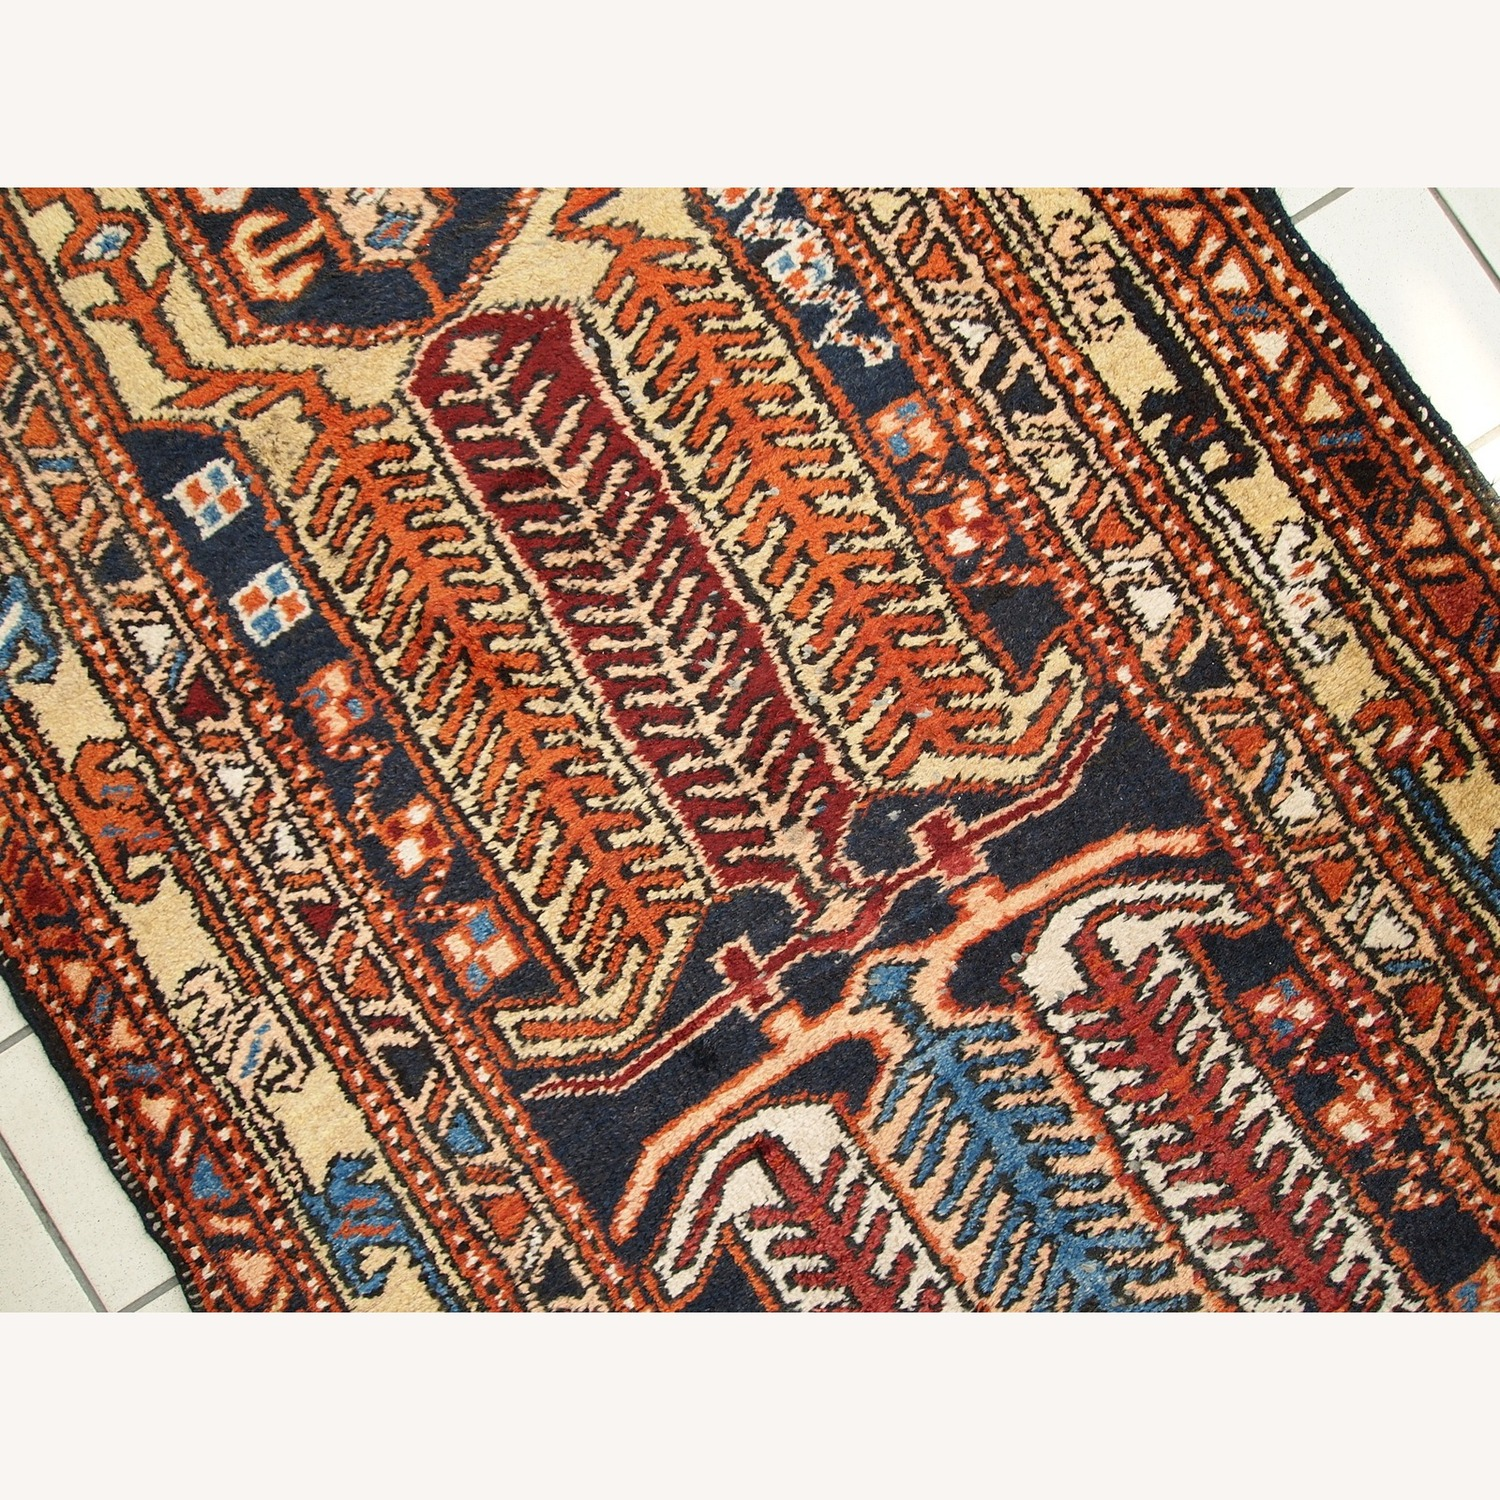 Handmade Antique Persian Heriz Runner - image-8